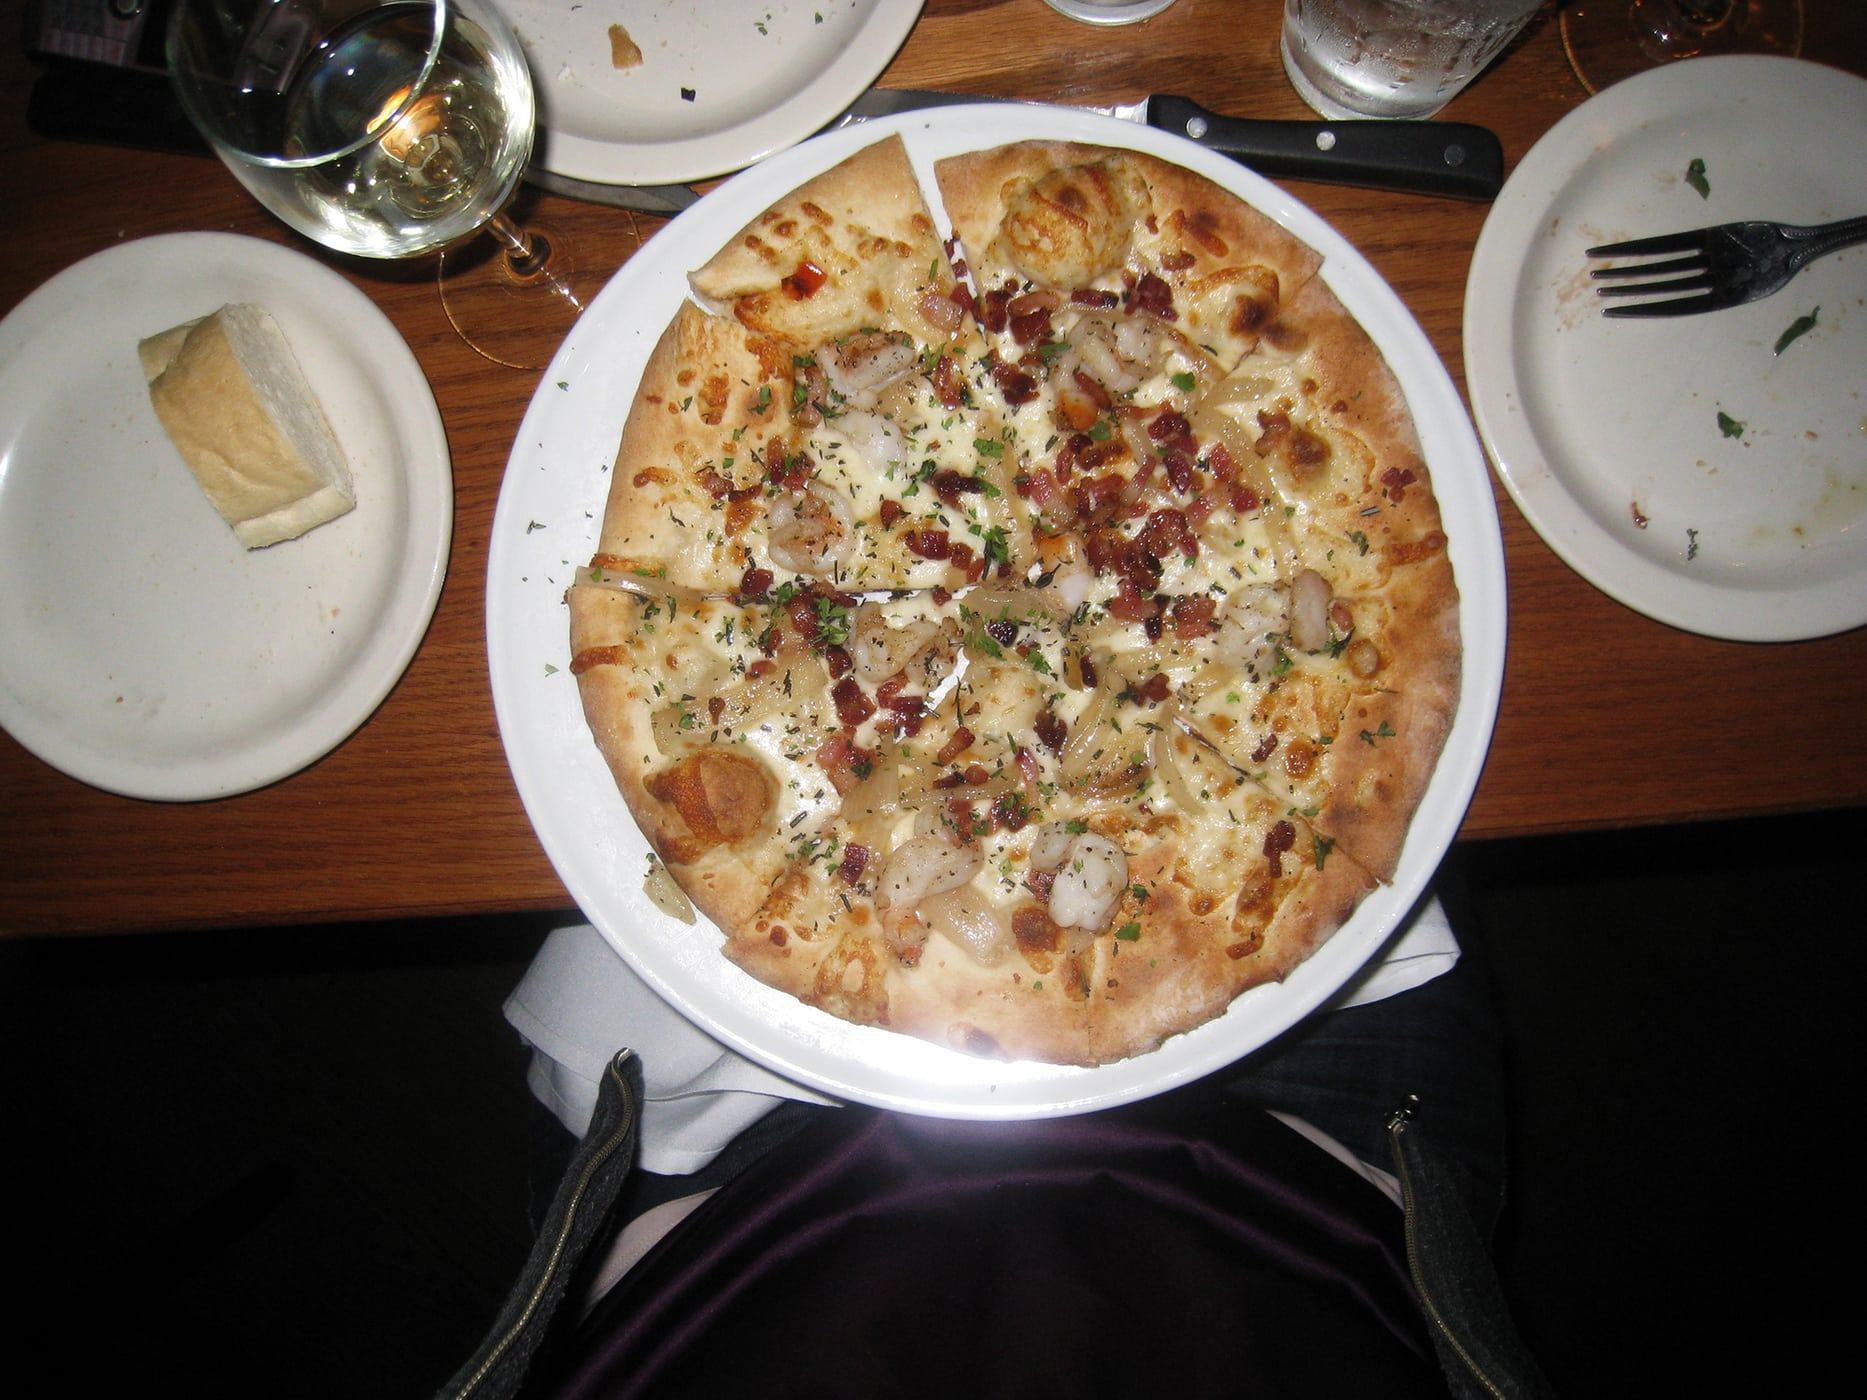 Shrimp and bacon pizza from Frasca